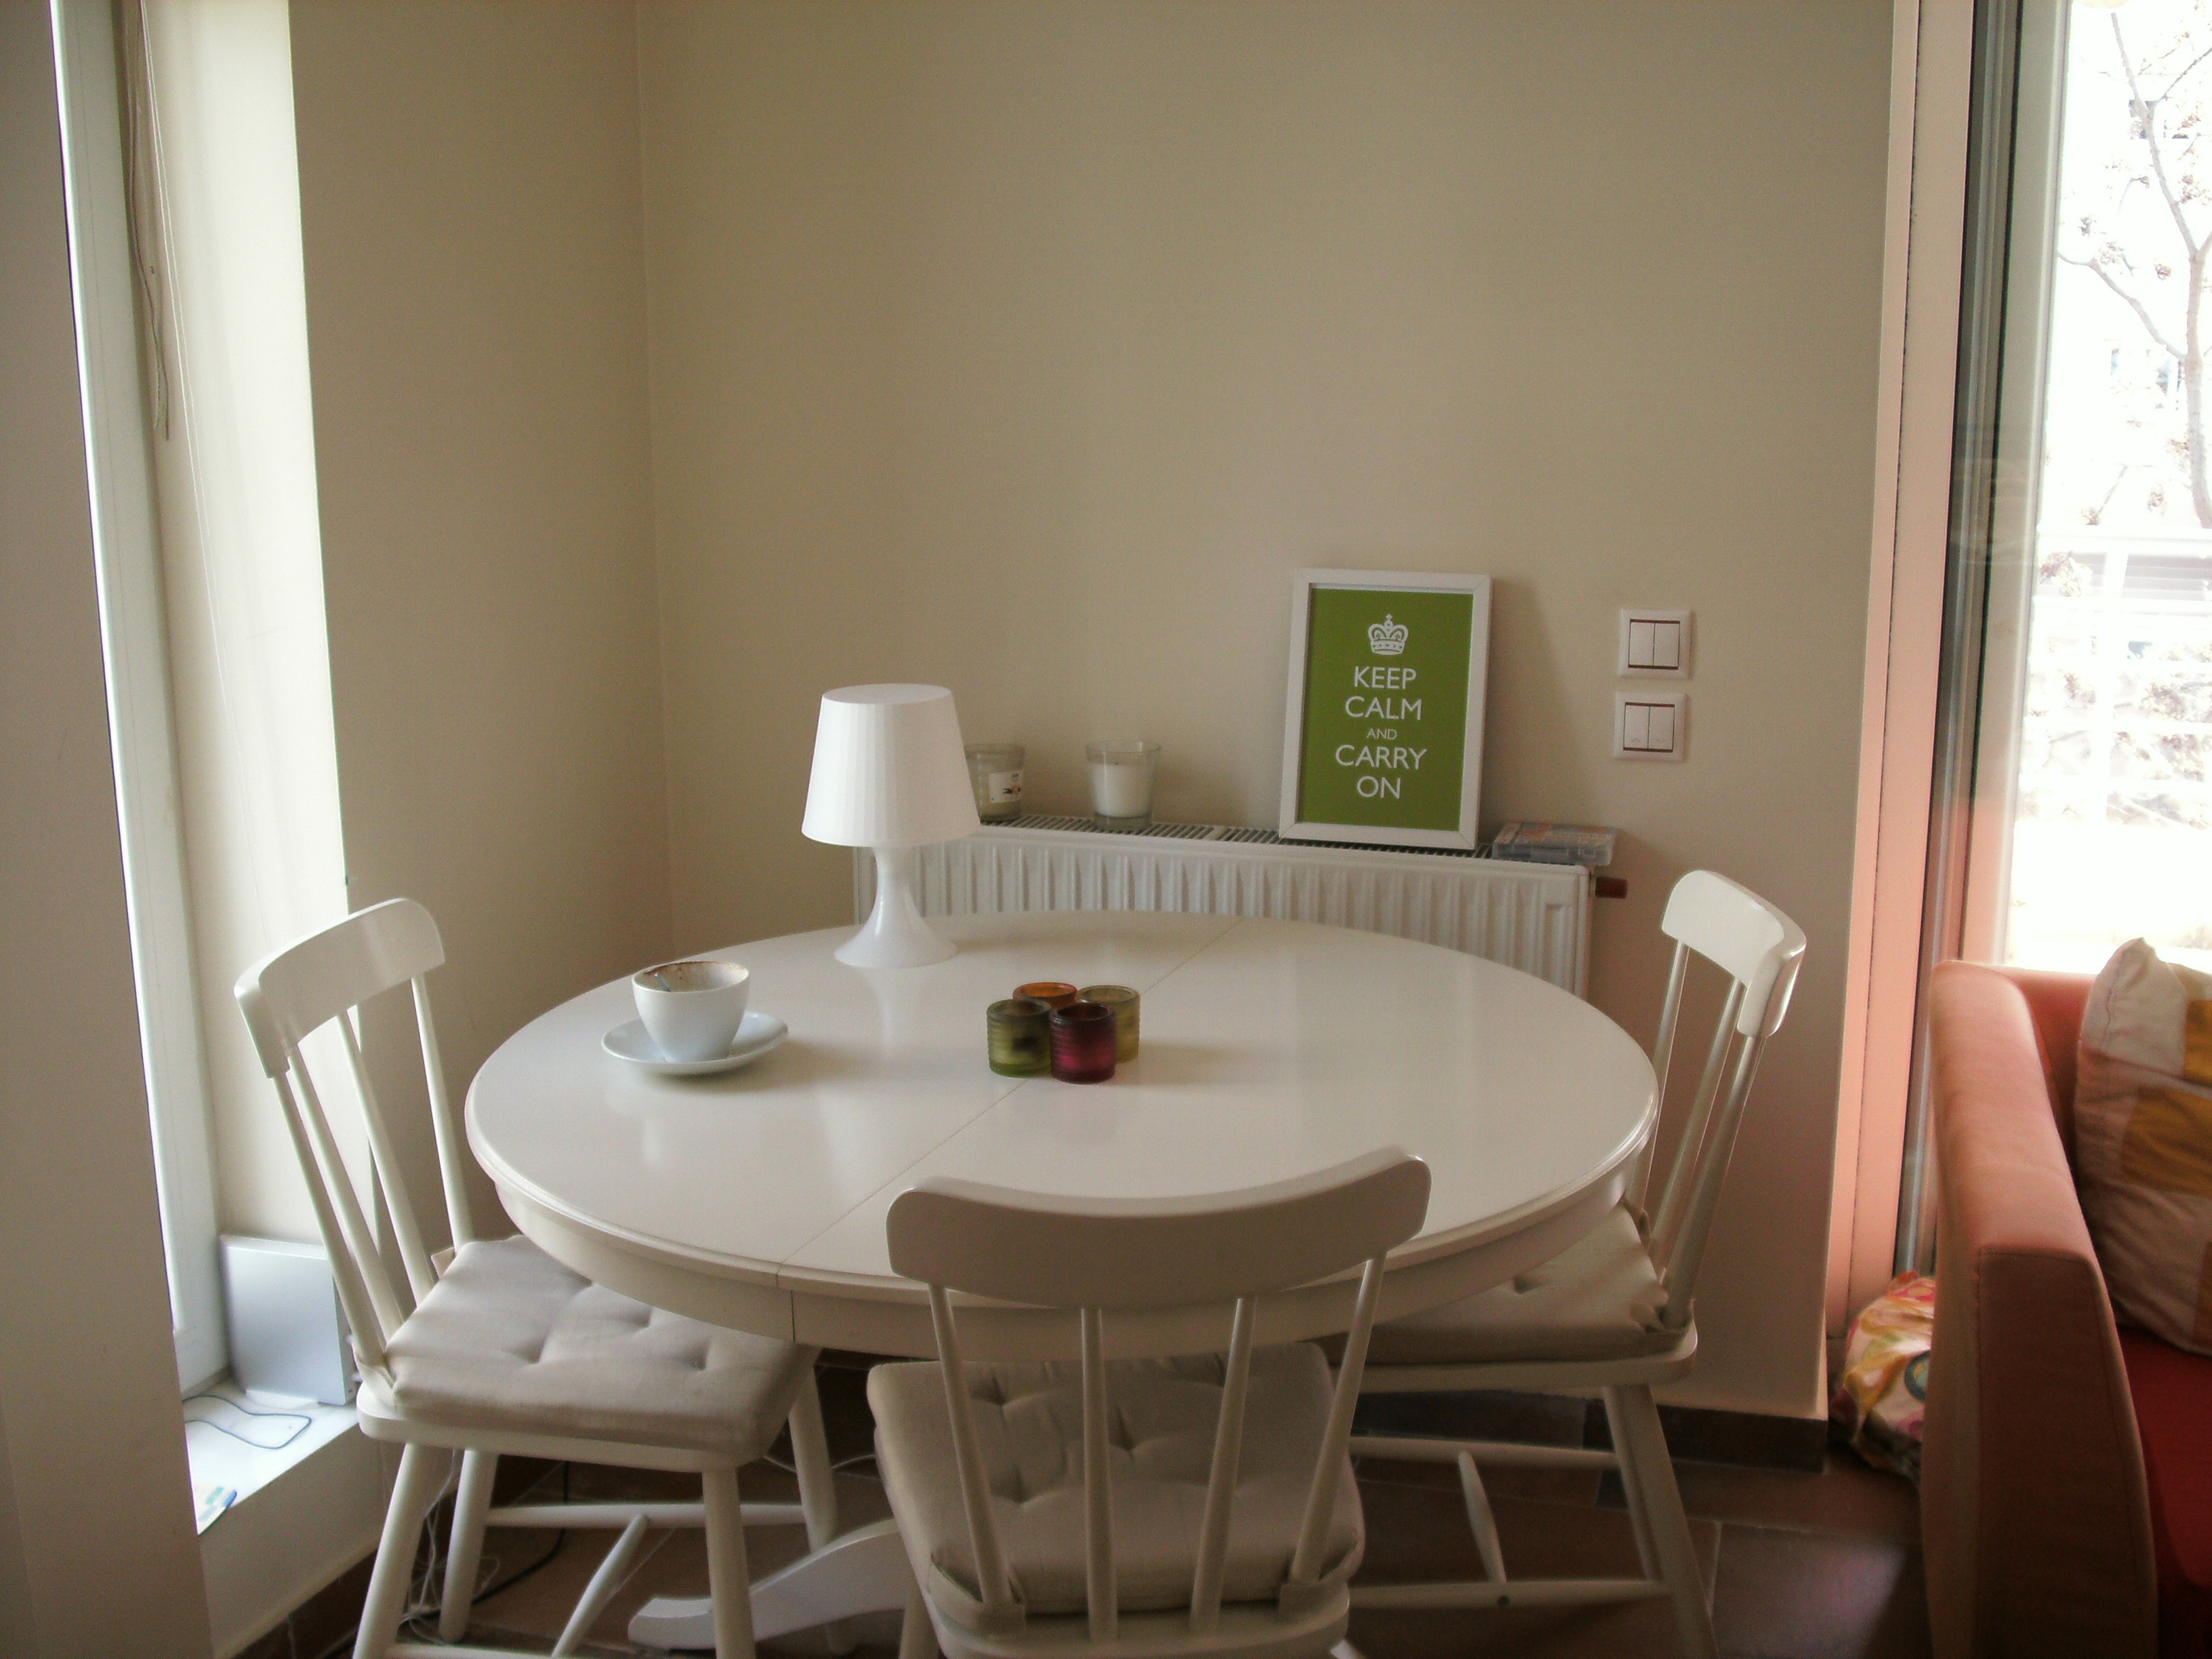 Corner Furniture Set Round White Table And Three Chairs Near Sofa And Cabinet